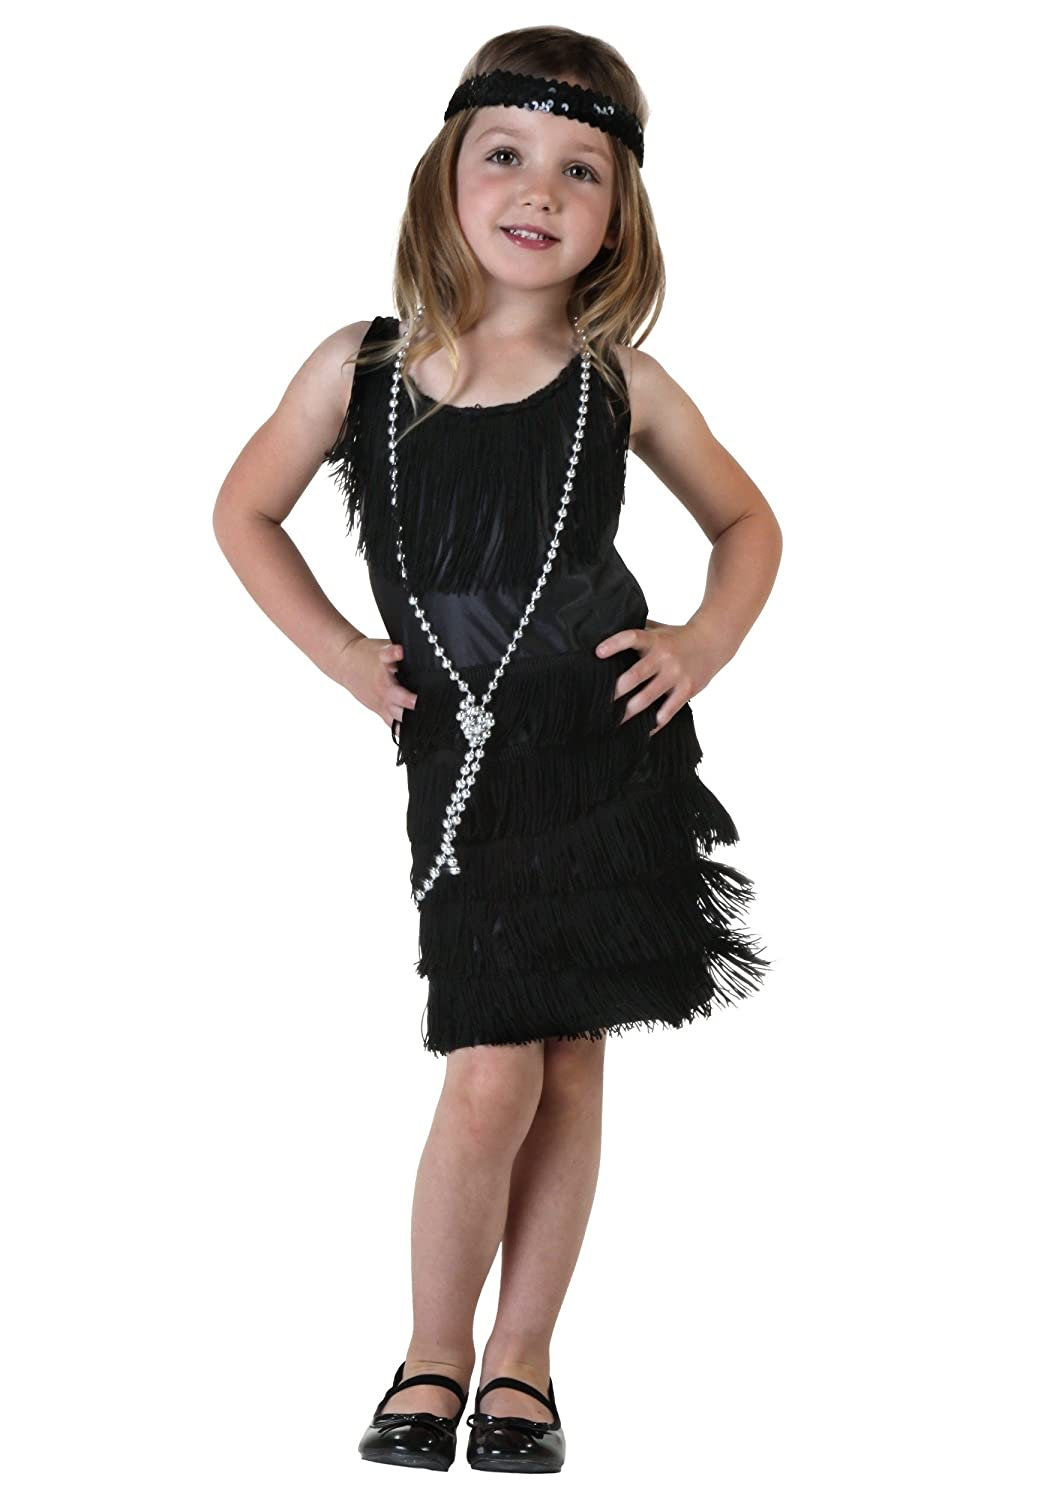 Top 10 wholesale Black Charleston Dress - Chinabrands.com 8ee8a9ffcb31